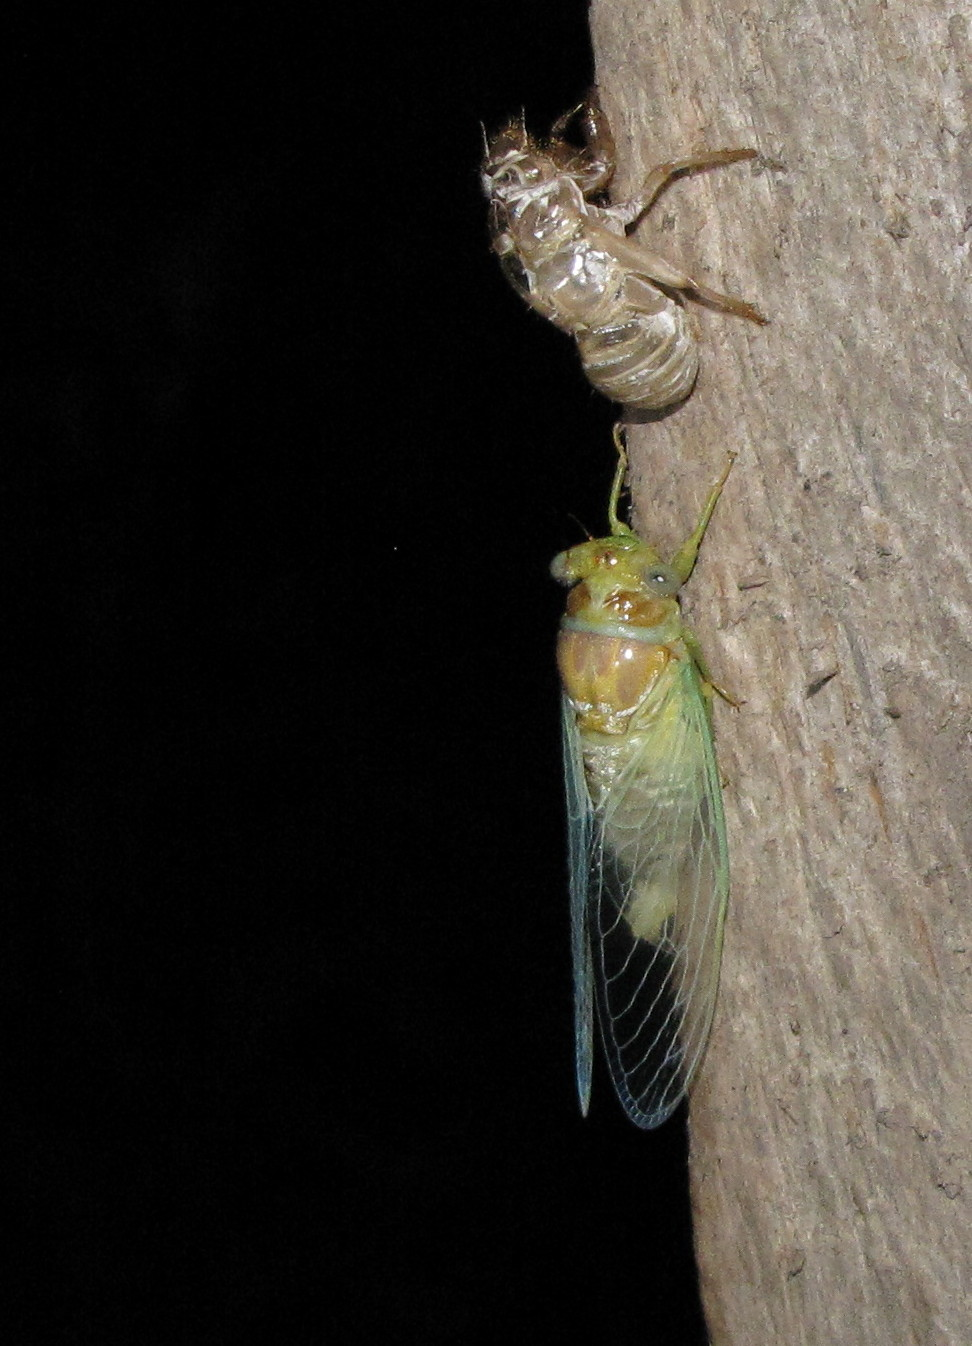 ... the insect splits its exoskeleton down the back. An adult cicada then ...